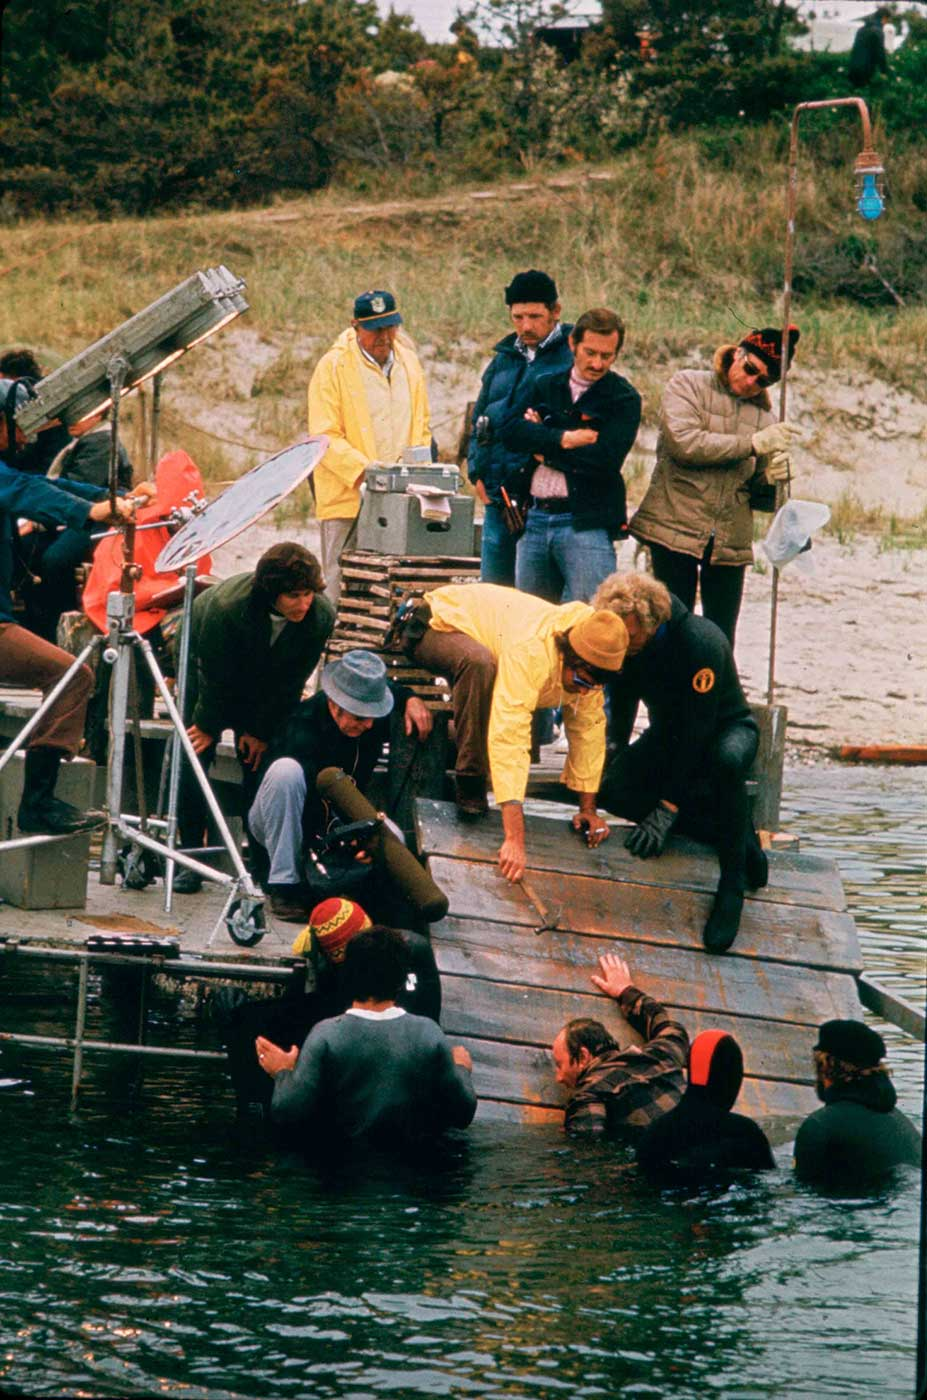 Shooting in Amity